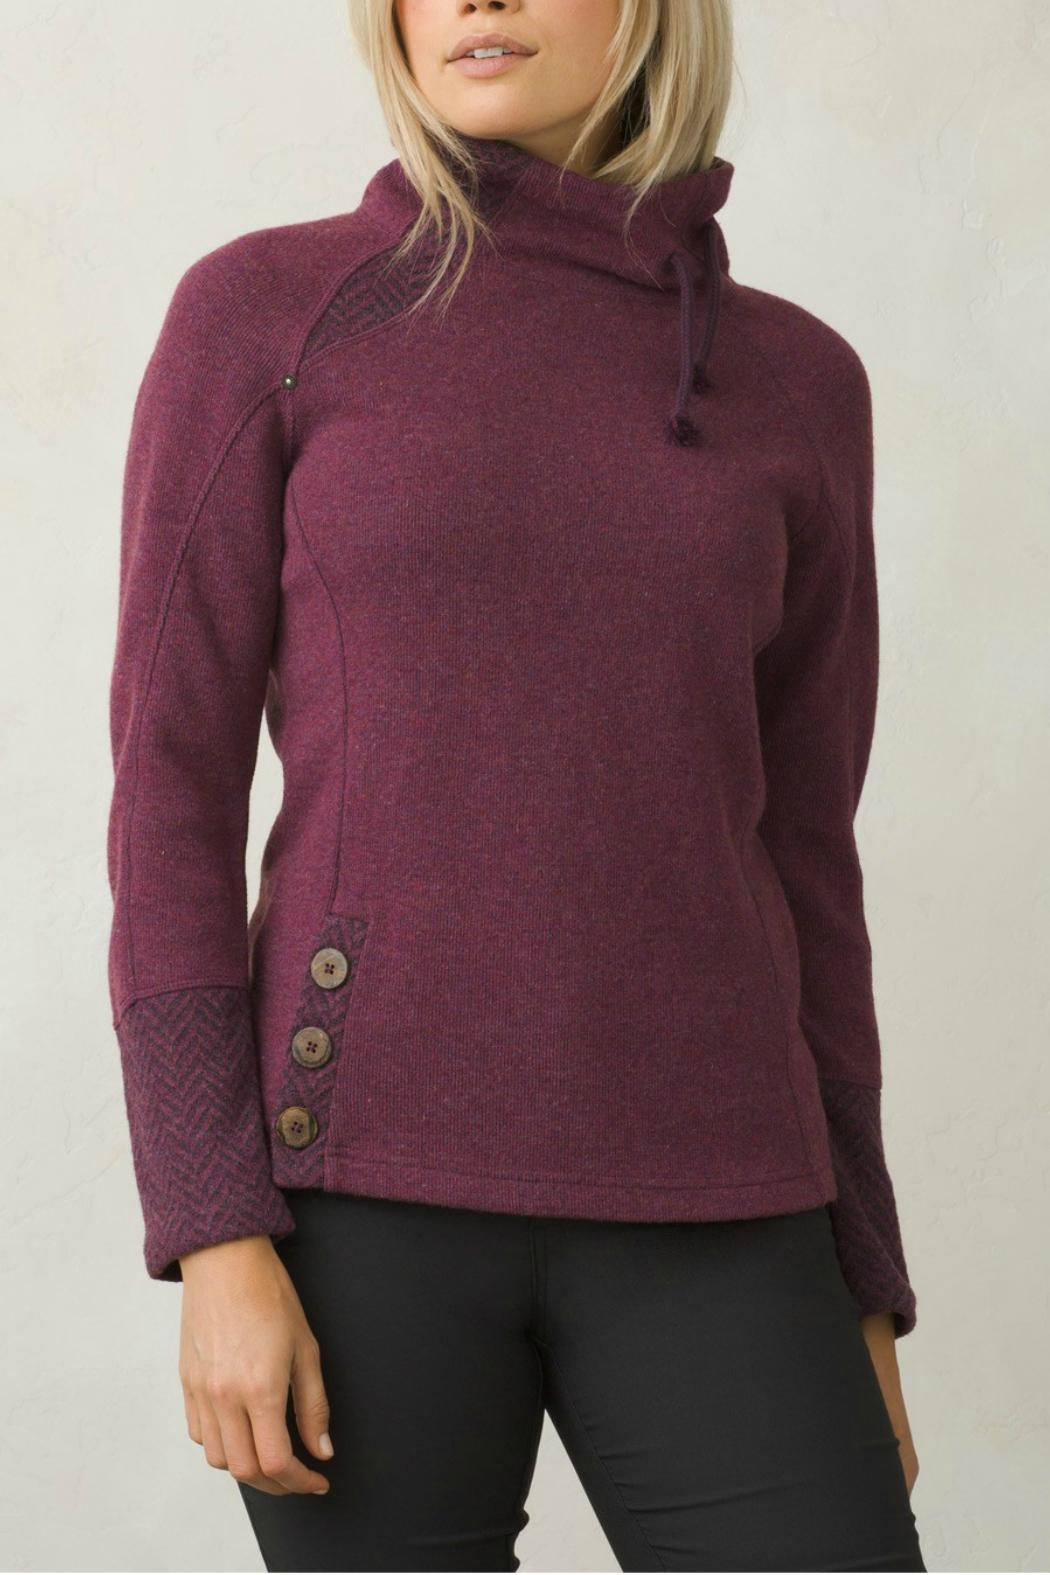 Prana Recycled Wool Sweater - Main Image